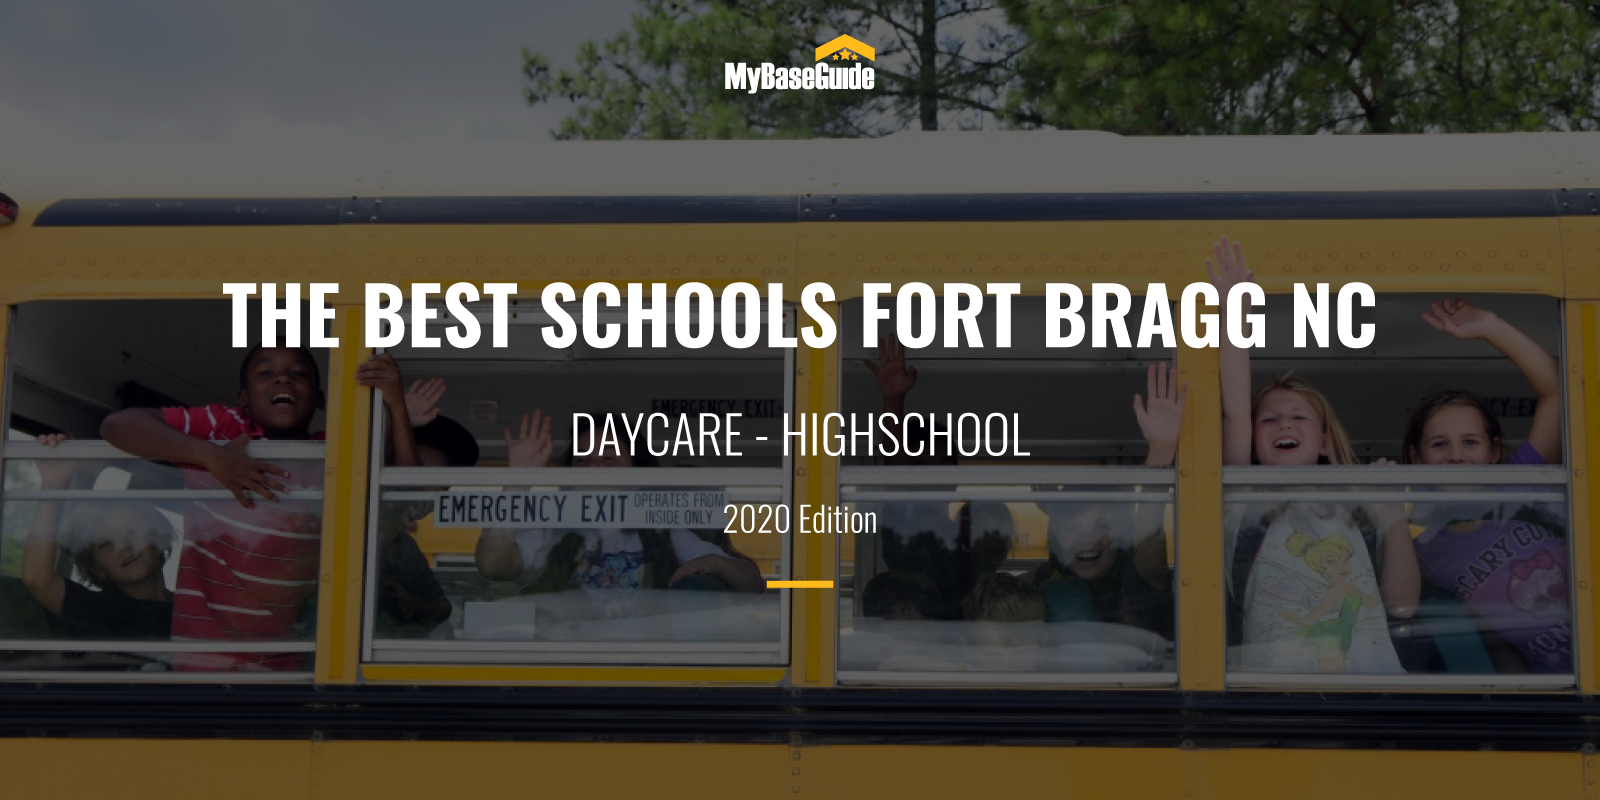 The Best Schools Fort Bragg NC